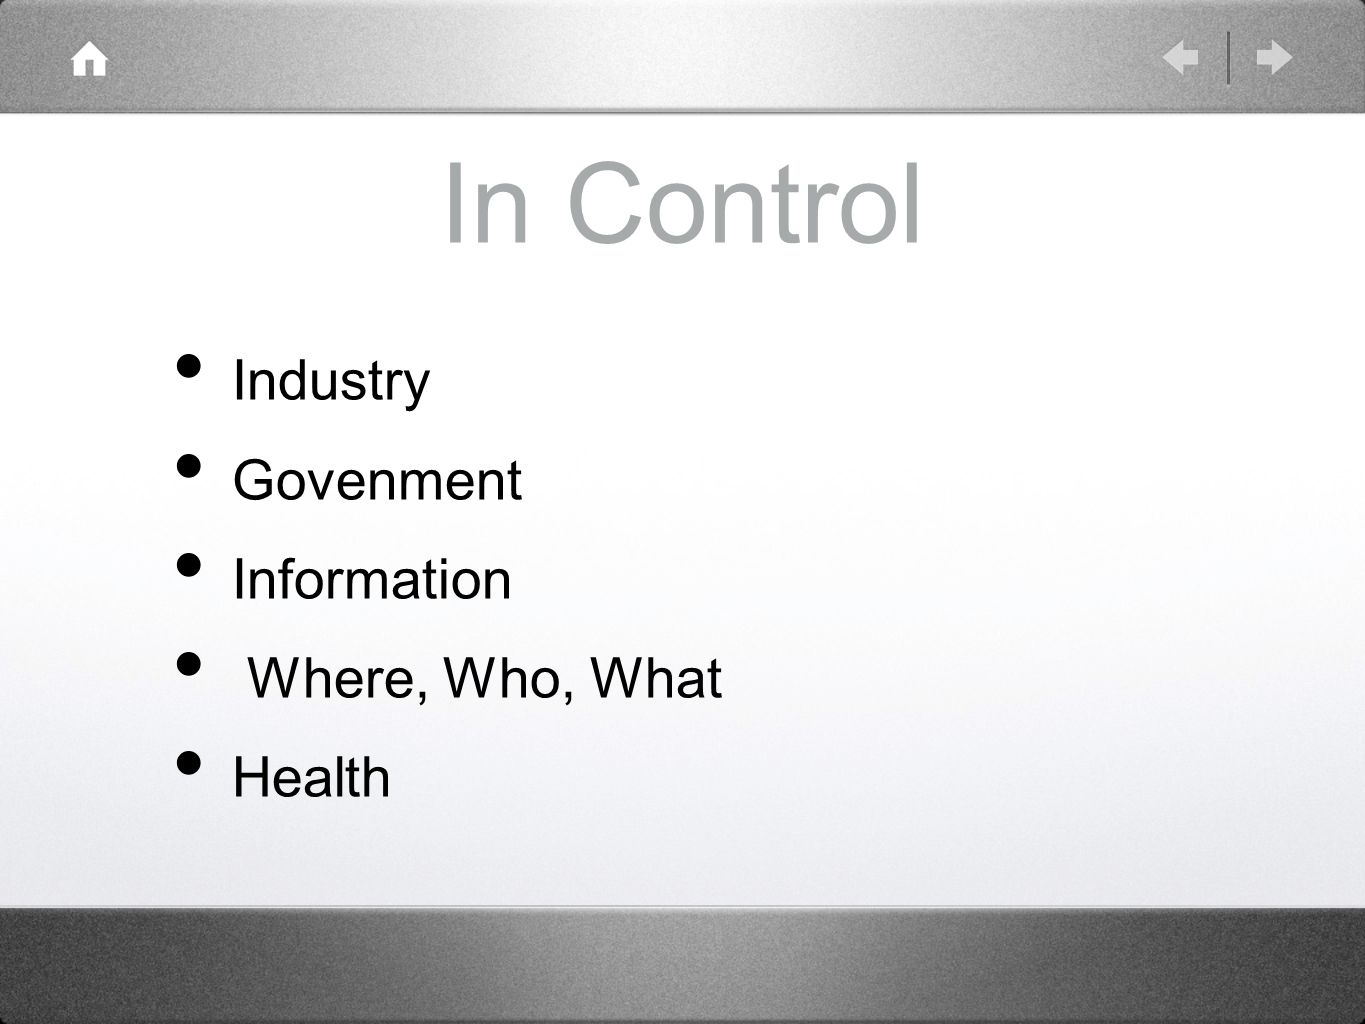 In Control Industry Govenment Information Where, Who, What Health